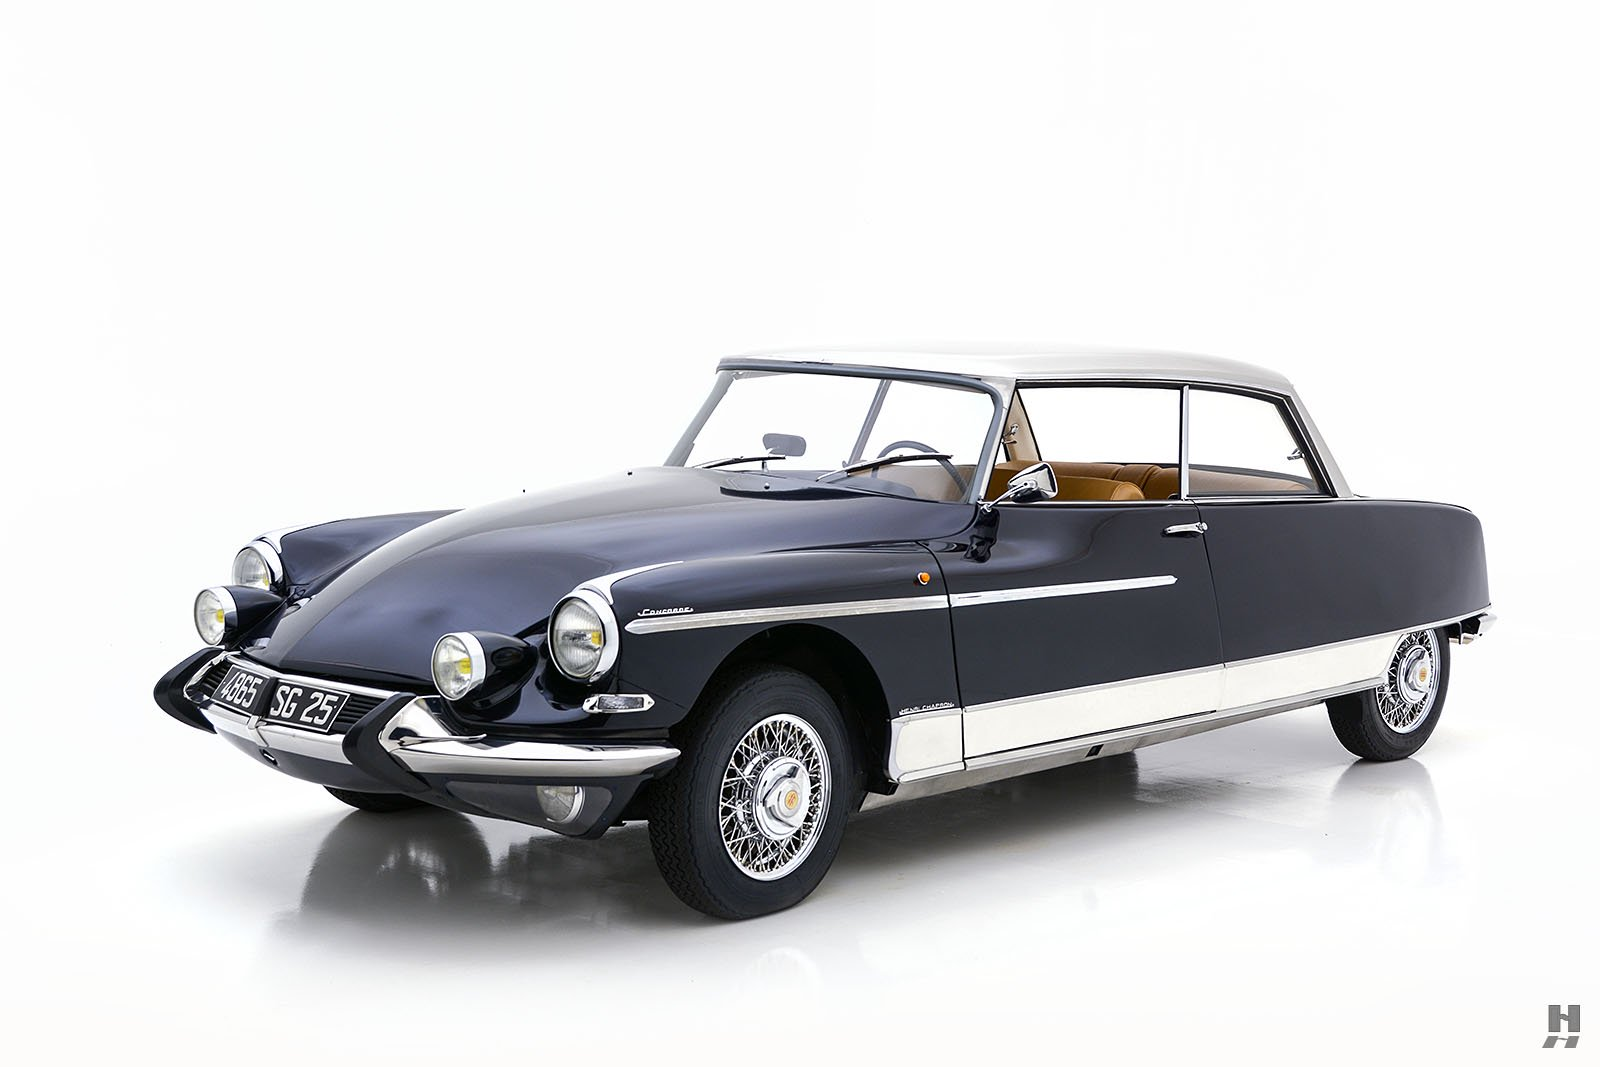 Citroen-DS21-Concorde-coupe-for-sale-5